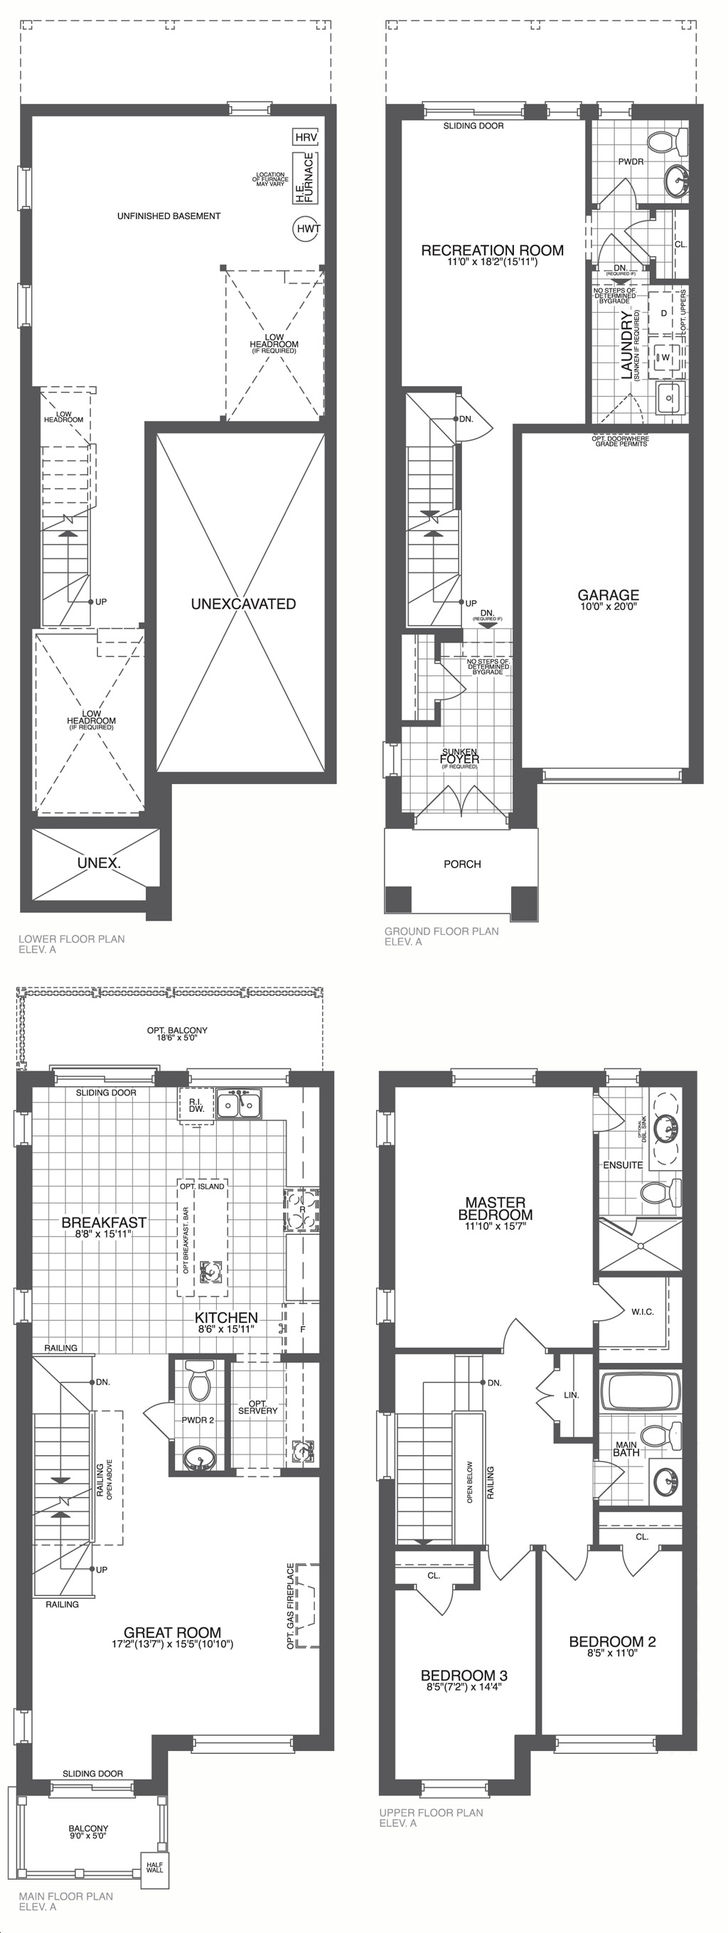 Main And Co Towns By Stateview Homes The Applewood Floorplan 3 Bed 3 Bath